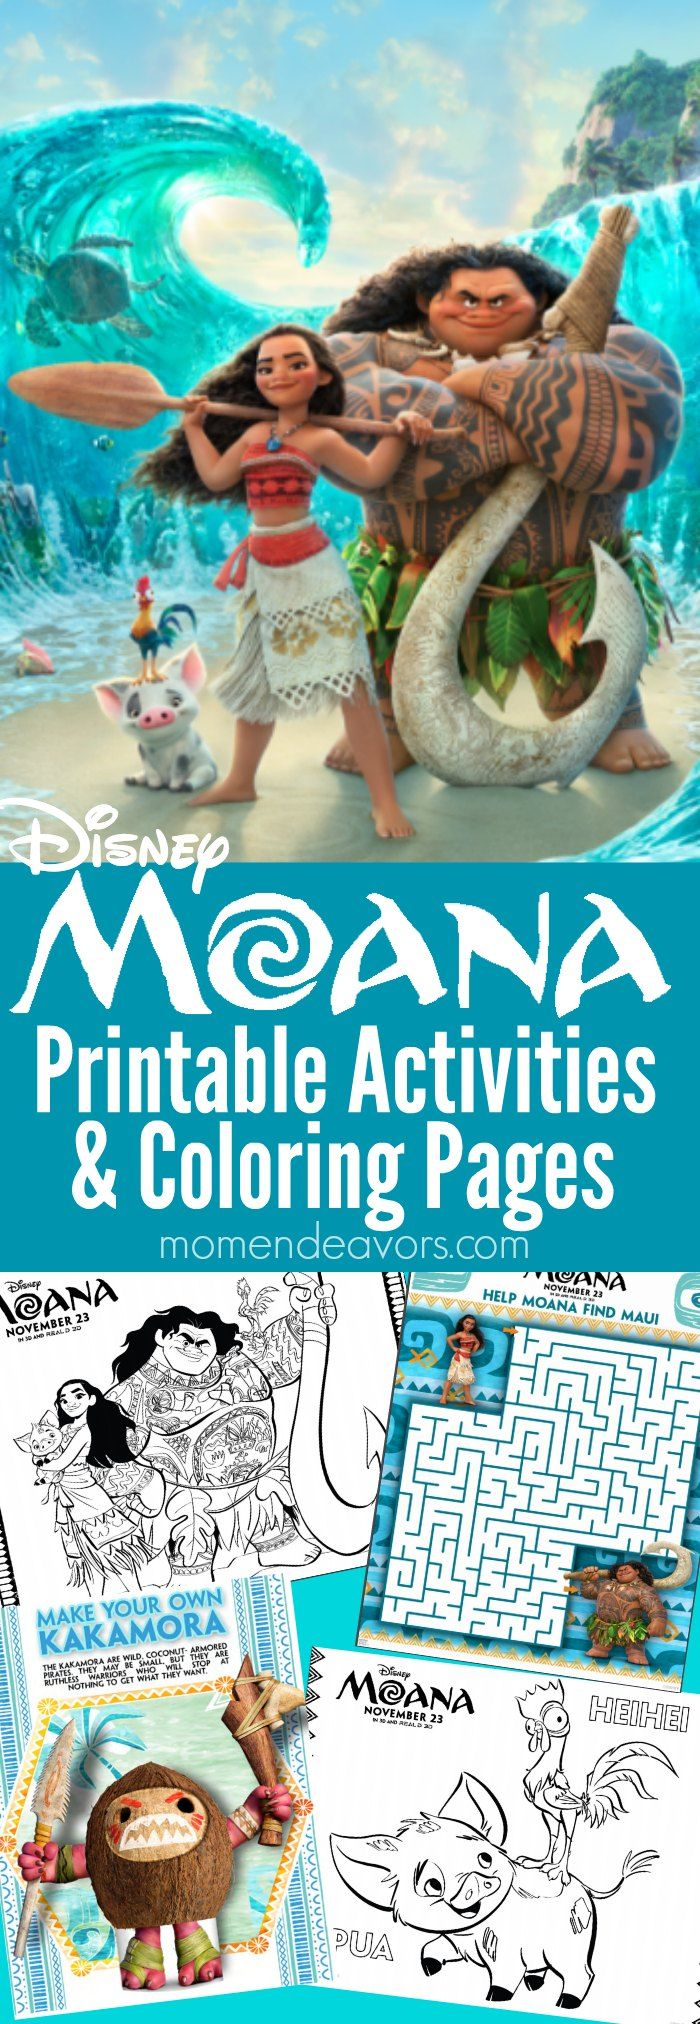 Disney velvet coloring posters - Disney Moana Printable Activities And Coloring Pages Kids Will Love These Free Printables Perfect